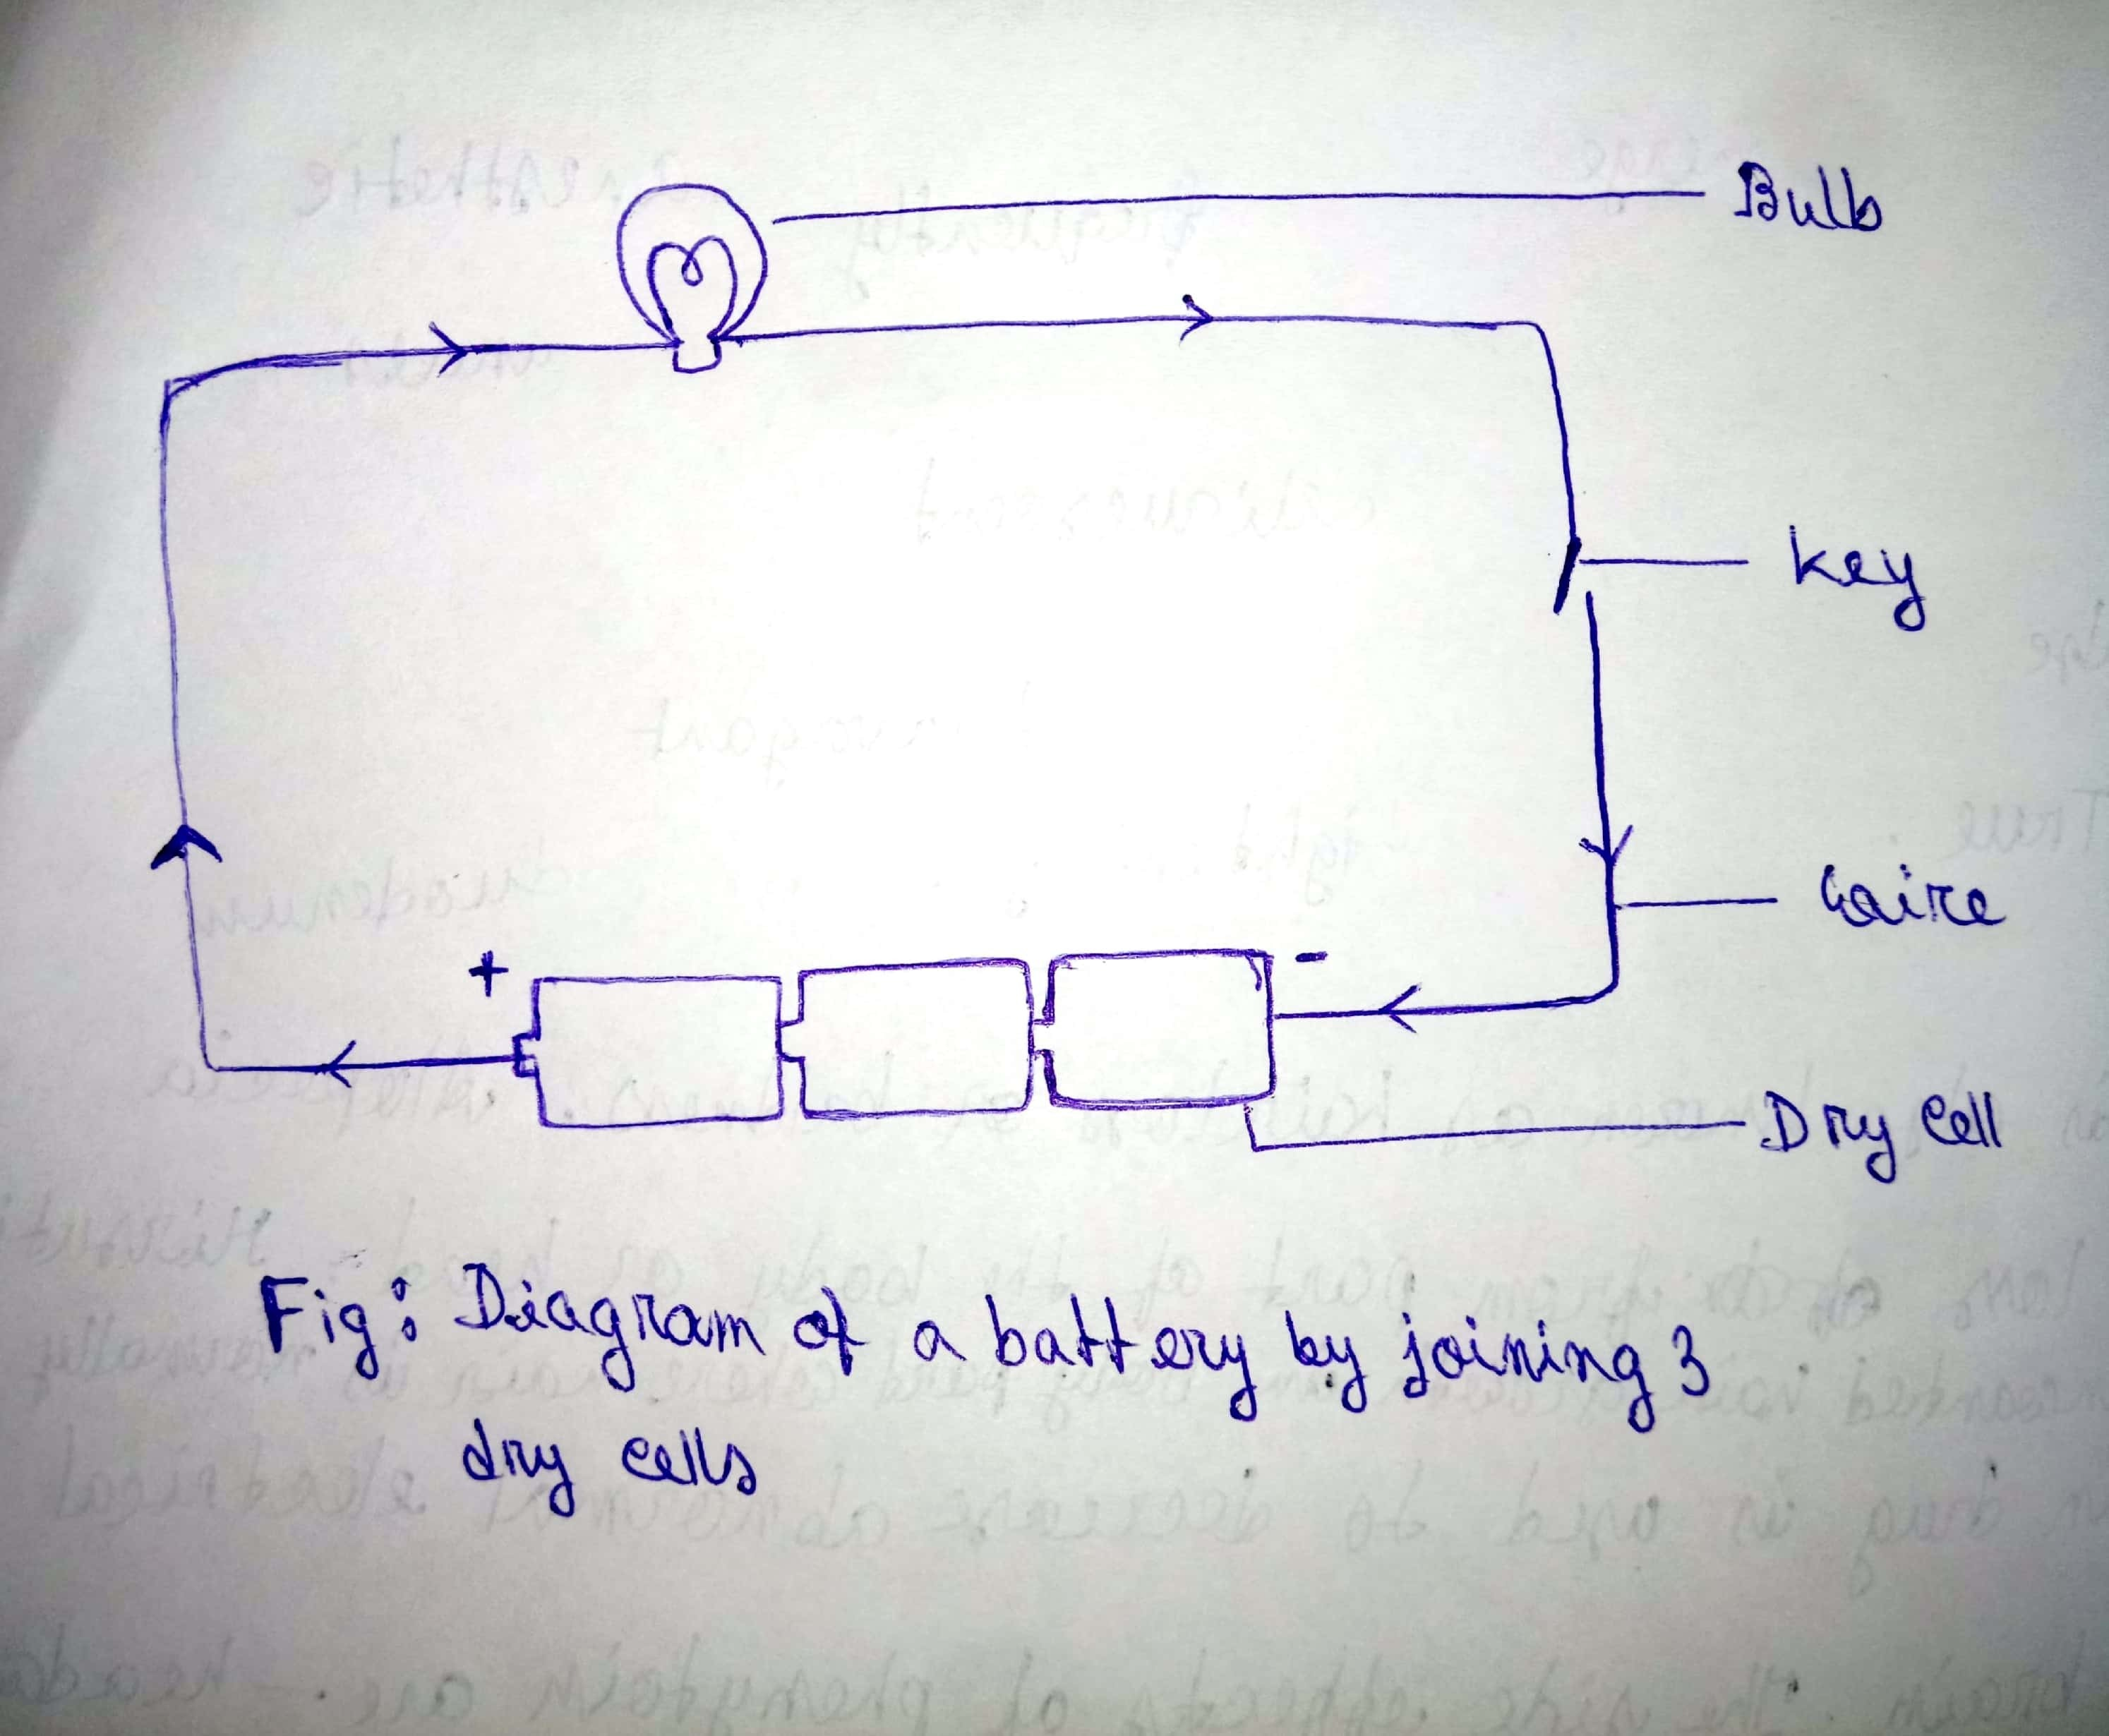 A battery is to be formed by joining 3 dry cells them with ... on concept map, block diagram, process flow diagram, sankey diagram, venn diagram, wire connect, system context diagram, data flow diagram, data connect, circuit diagram, euler diagram, technical drawing, computer network diagram, mind map, control flow diagram, computer connect, functional flow block diagram,